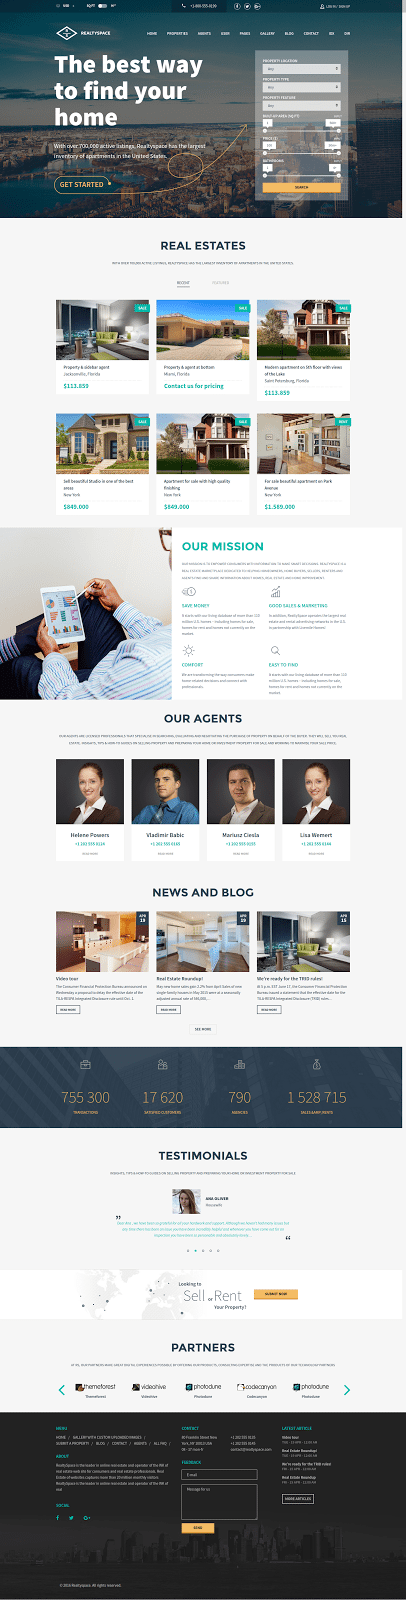 Realtyspace - real estate website templates